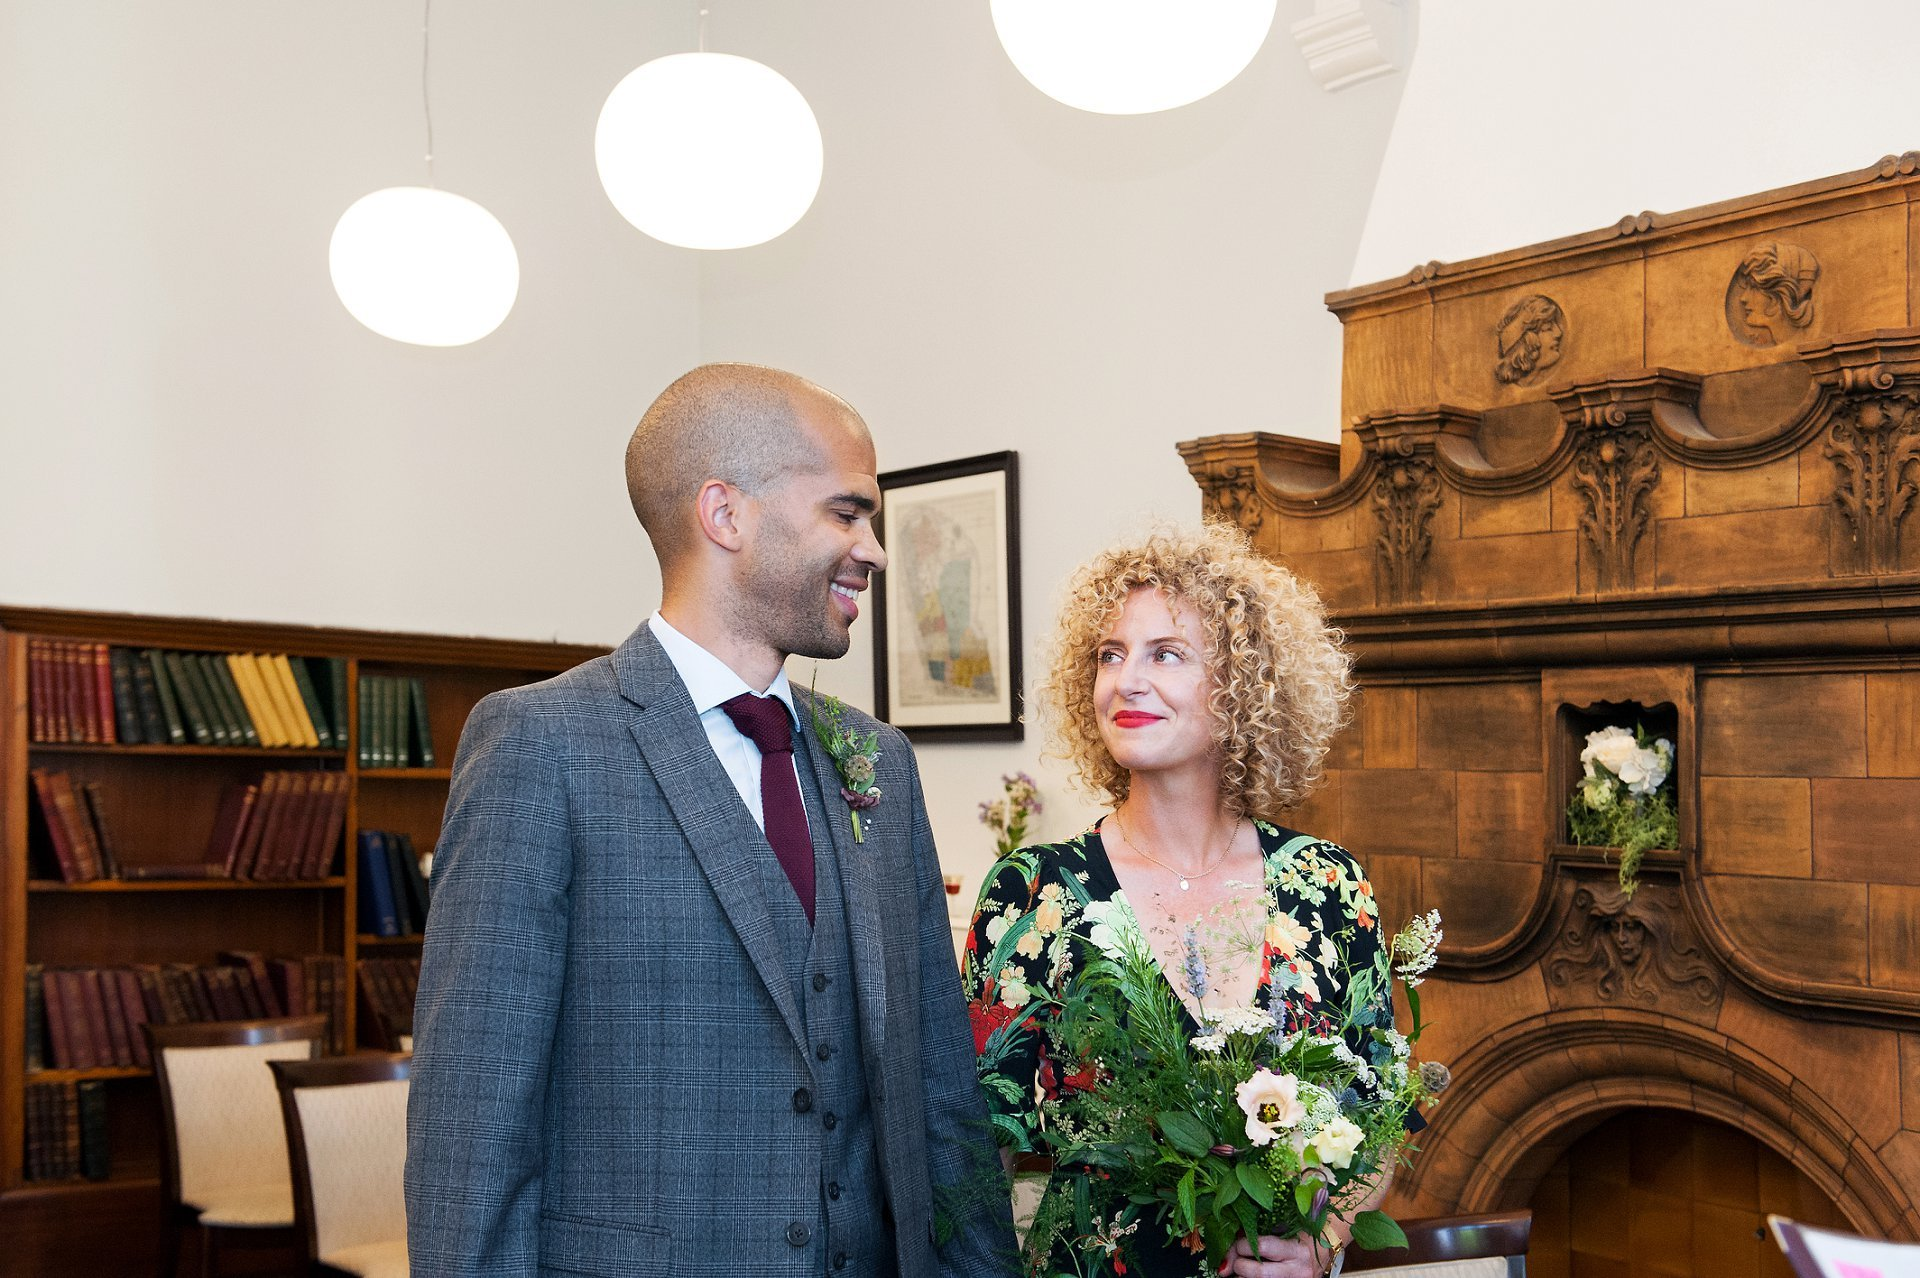 Mayfair Library wedding photographer Emma Duggan at the start of the civil ceremony of Jodie and Adrian, with the couple smiling at each other